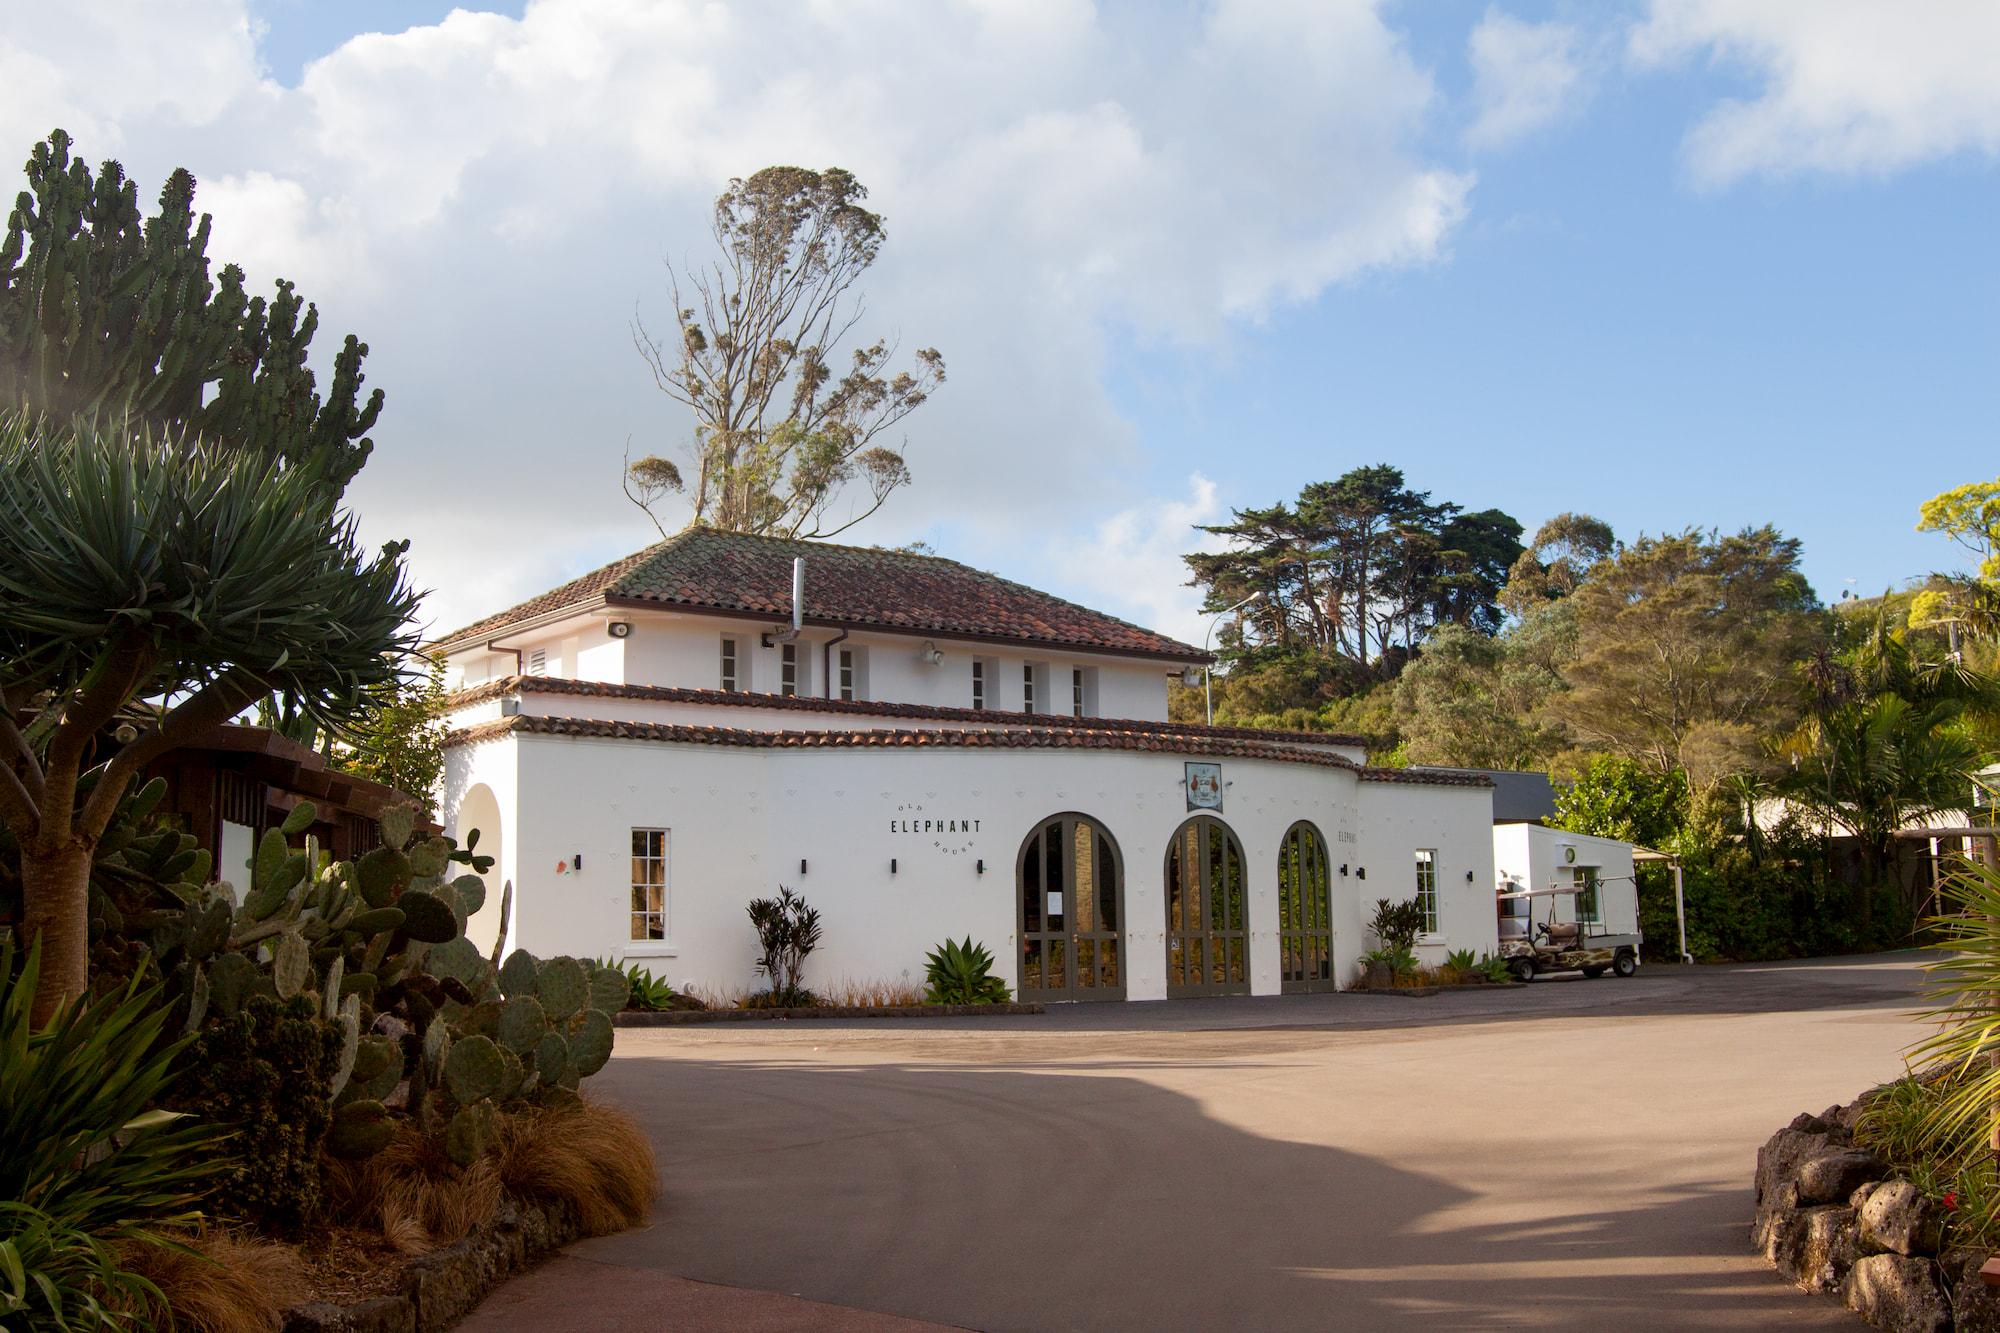 https://rfacdn.nz/conventions/assets/media/auckland-zoo-old-elephant-house-exterior.jpg